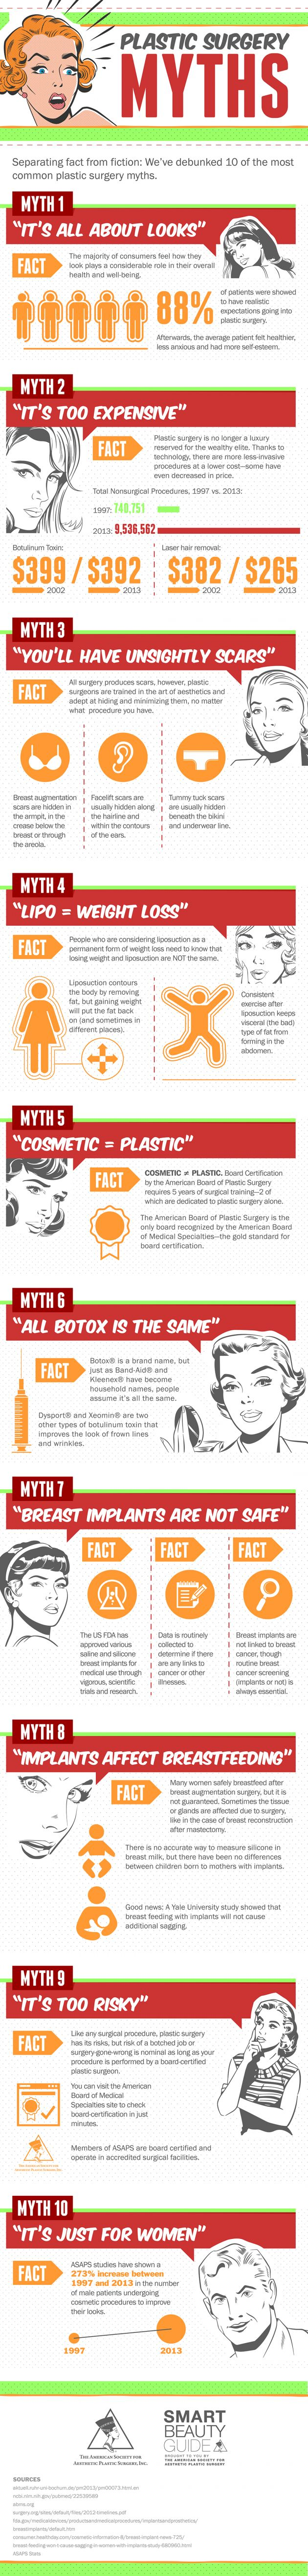 You hear them every day and wonder if they are really true.  I'm talking about the most common Plastic Surgery Myths.    Check out today's post to learn the truth about Plastic Surgery.  You might just be surprised what you find.    http://www.beautybybuford.com/news/what-are-the-top-plastic-surgery-myths/